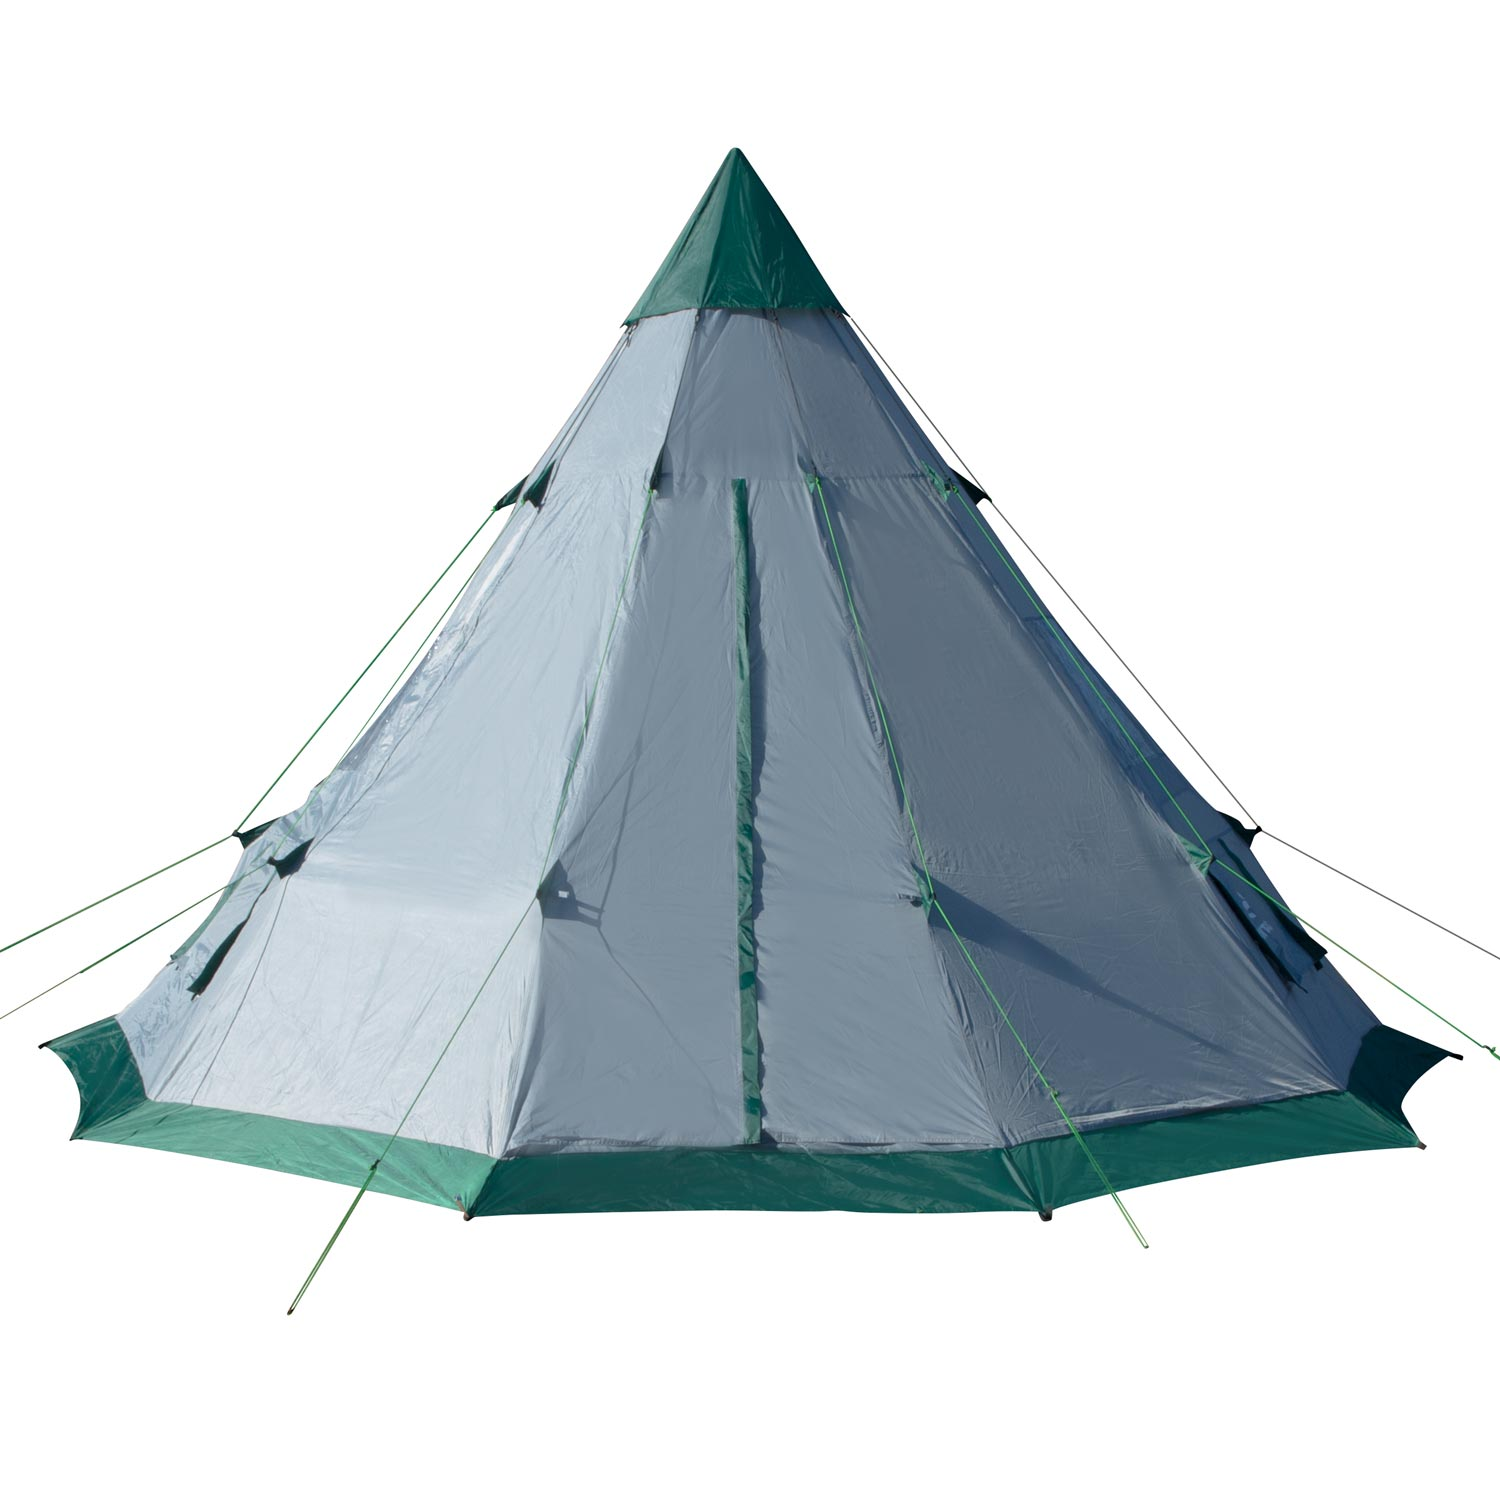 Teepee Tent | 6-7 Person Family Tent | Quick Setup  sc 1 st  Nextag & Teepee tent walmart | Tents | Compare Prices at Nextag